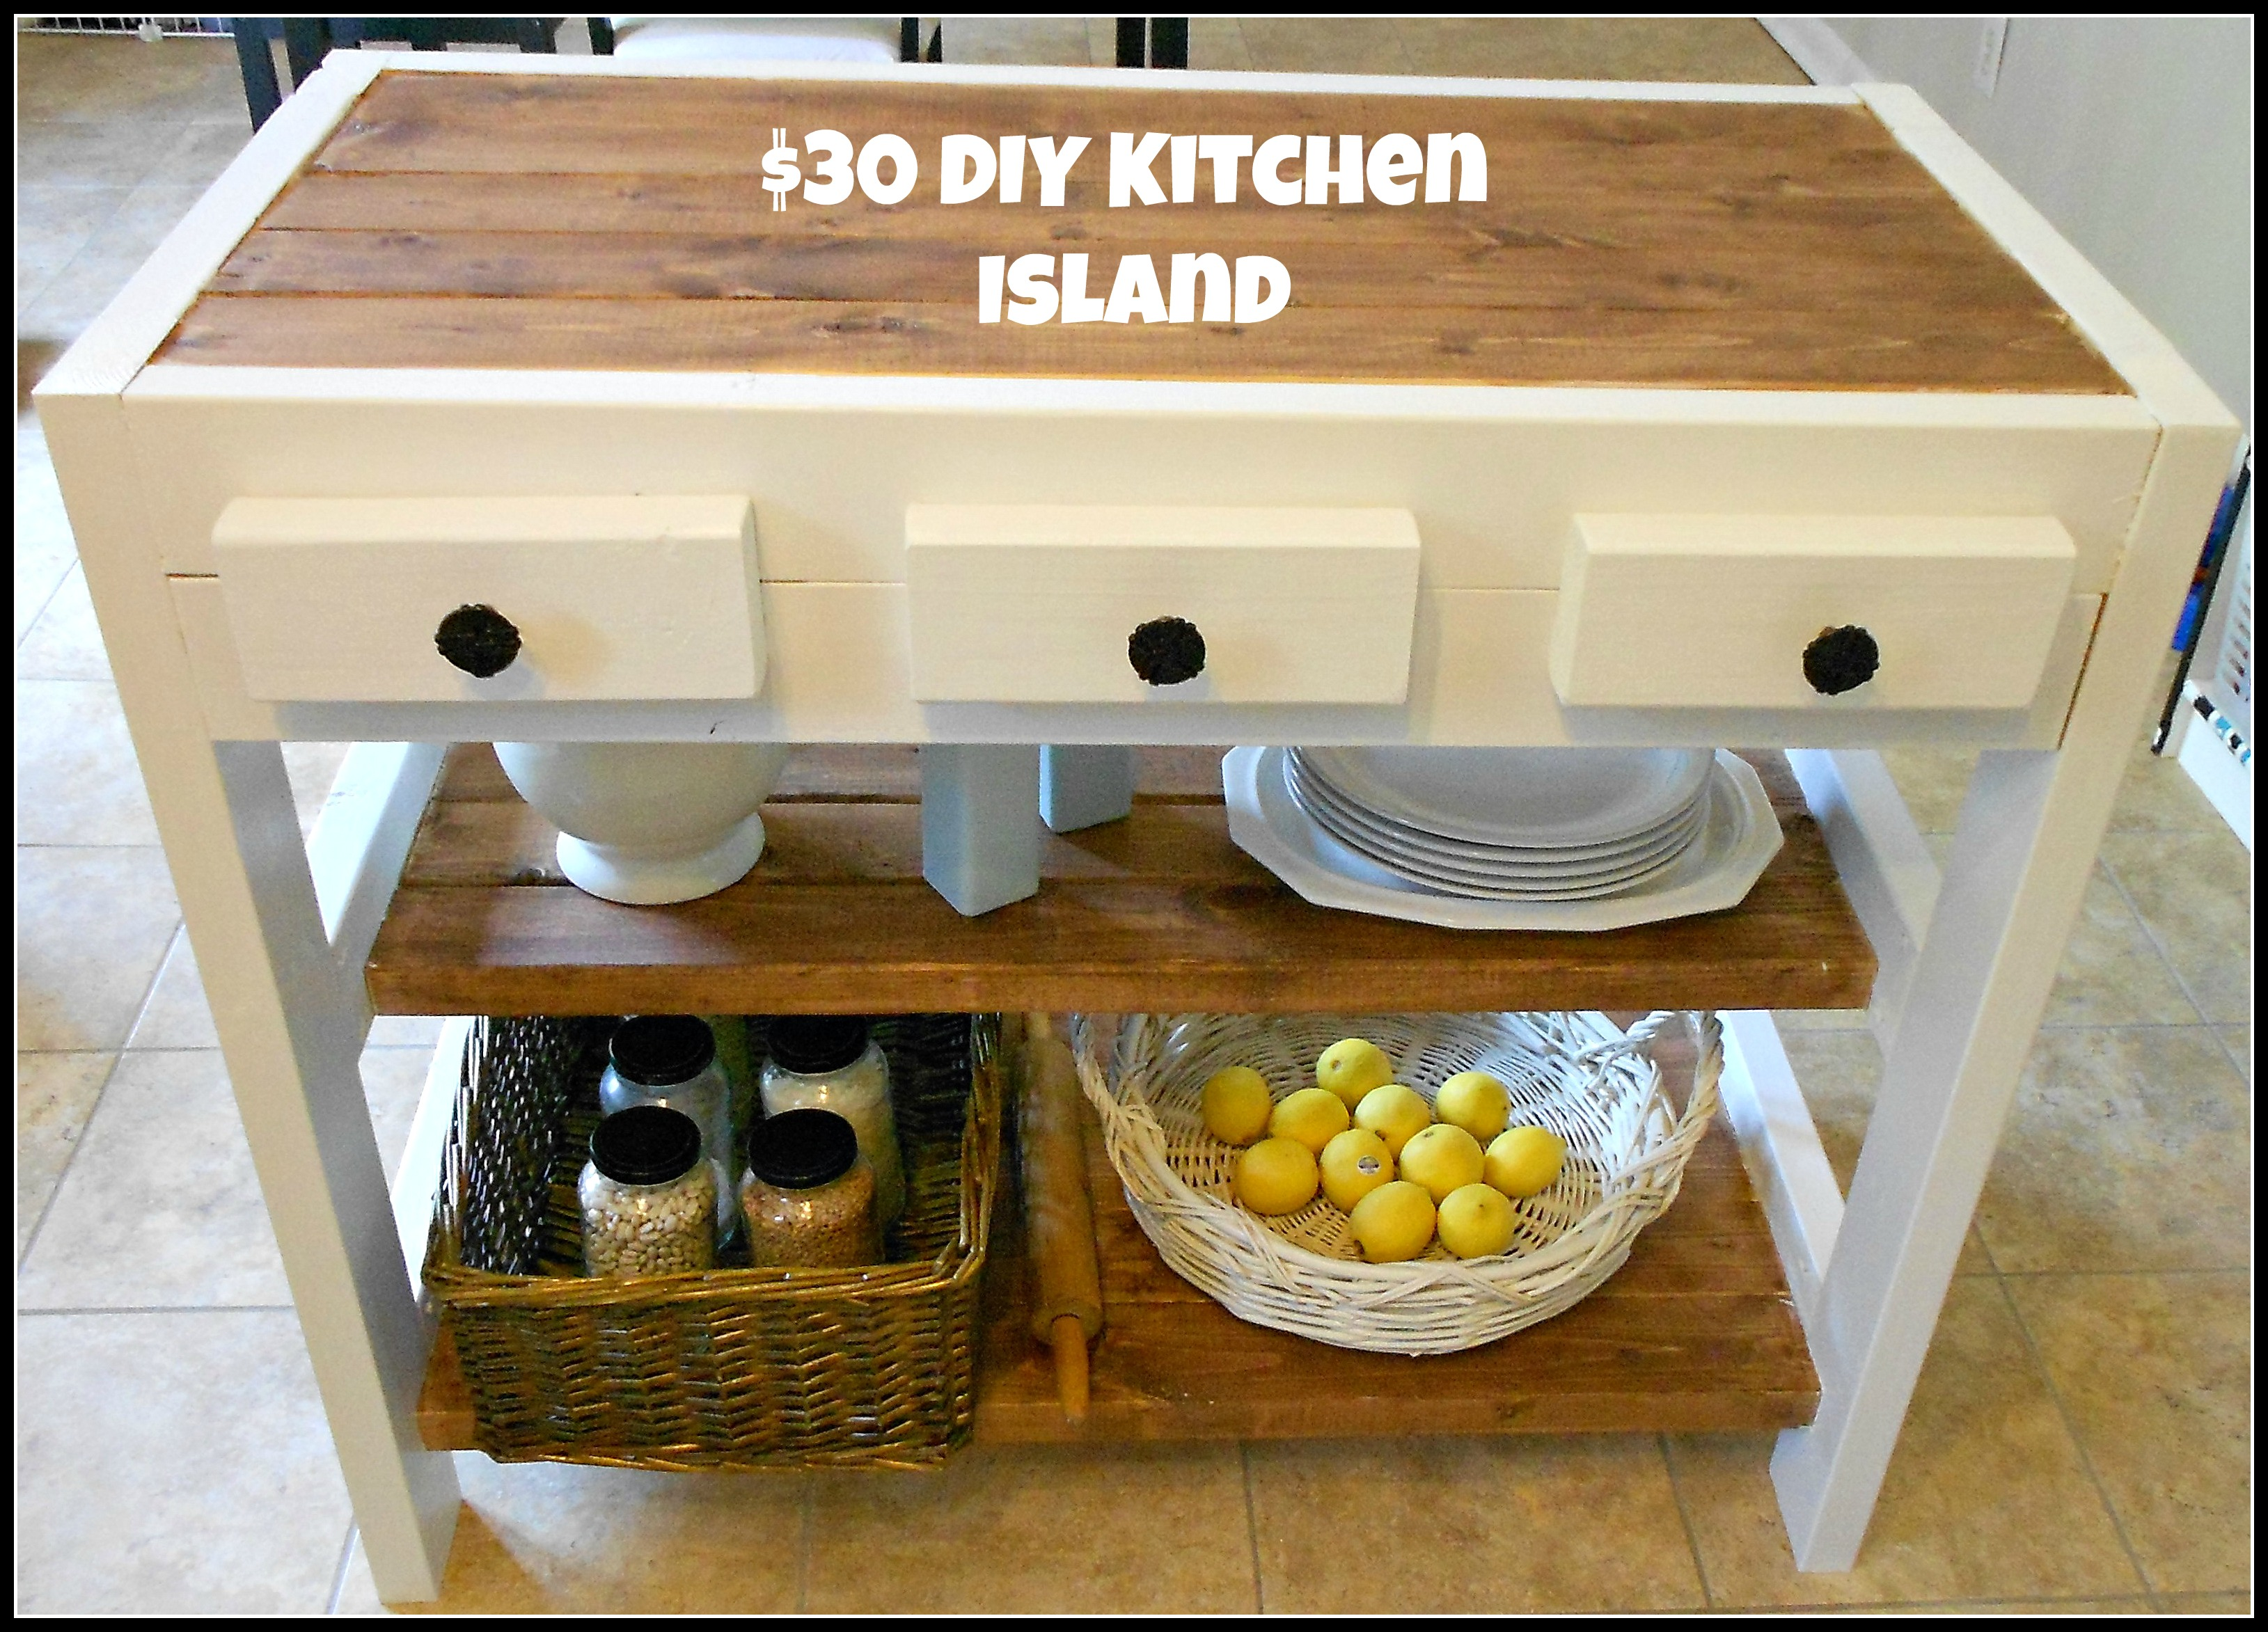 Kitchen Island Cart Diy $30 diy kitchen island - mom in music city